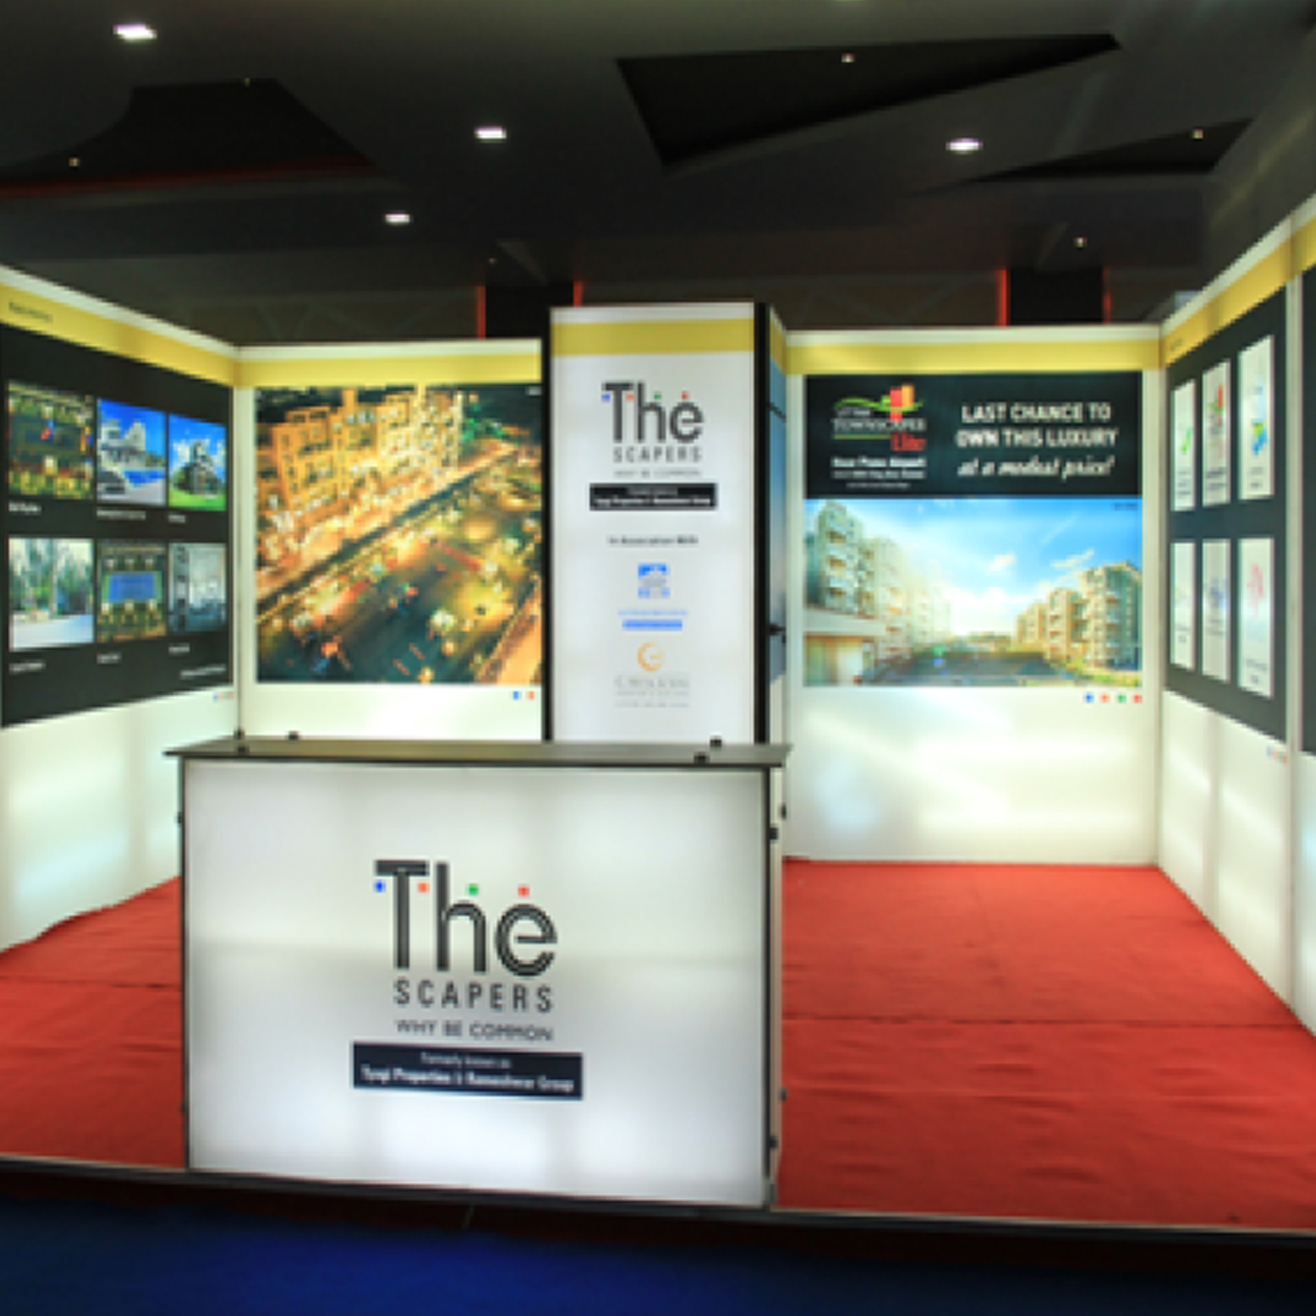 Exhibition Stall Case Study : Case study of the scrapers portable exhibition stall in